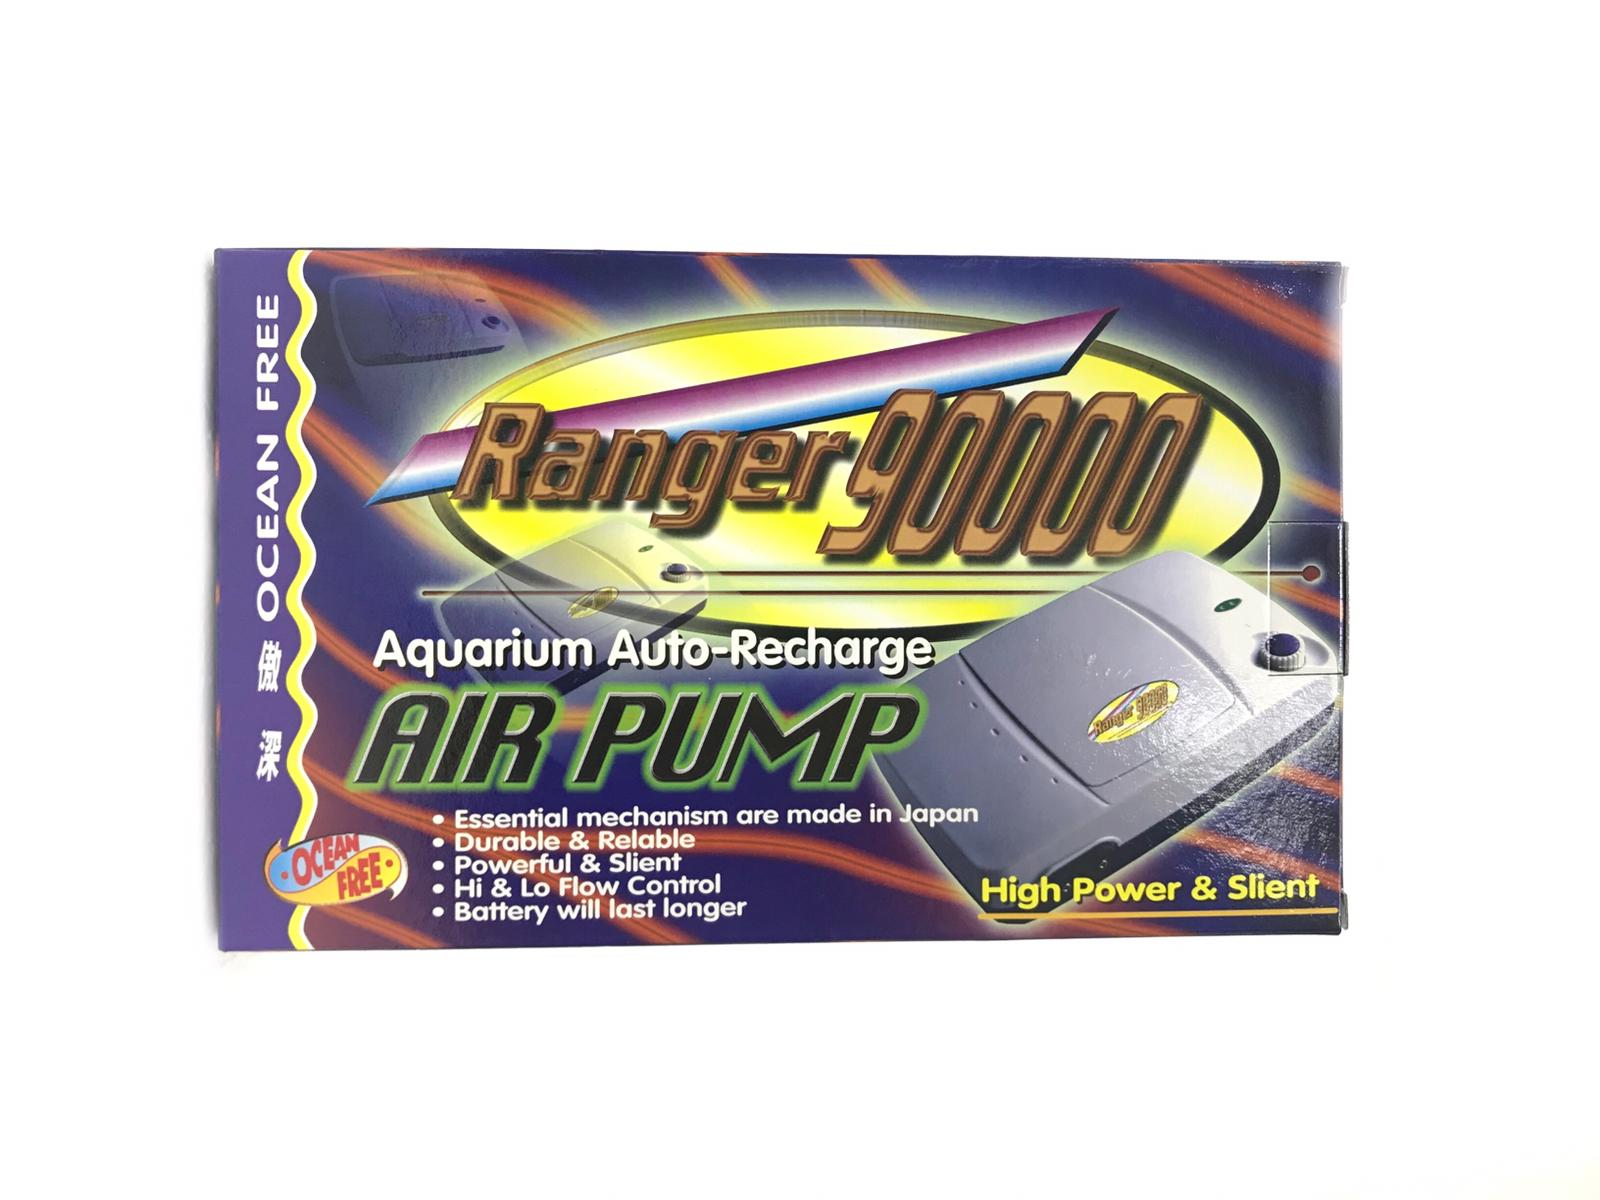 OF Aquarium Auto-Recharge Air Pump Ranger 90000